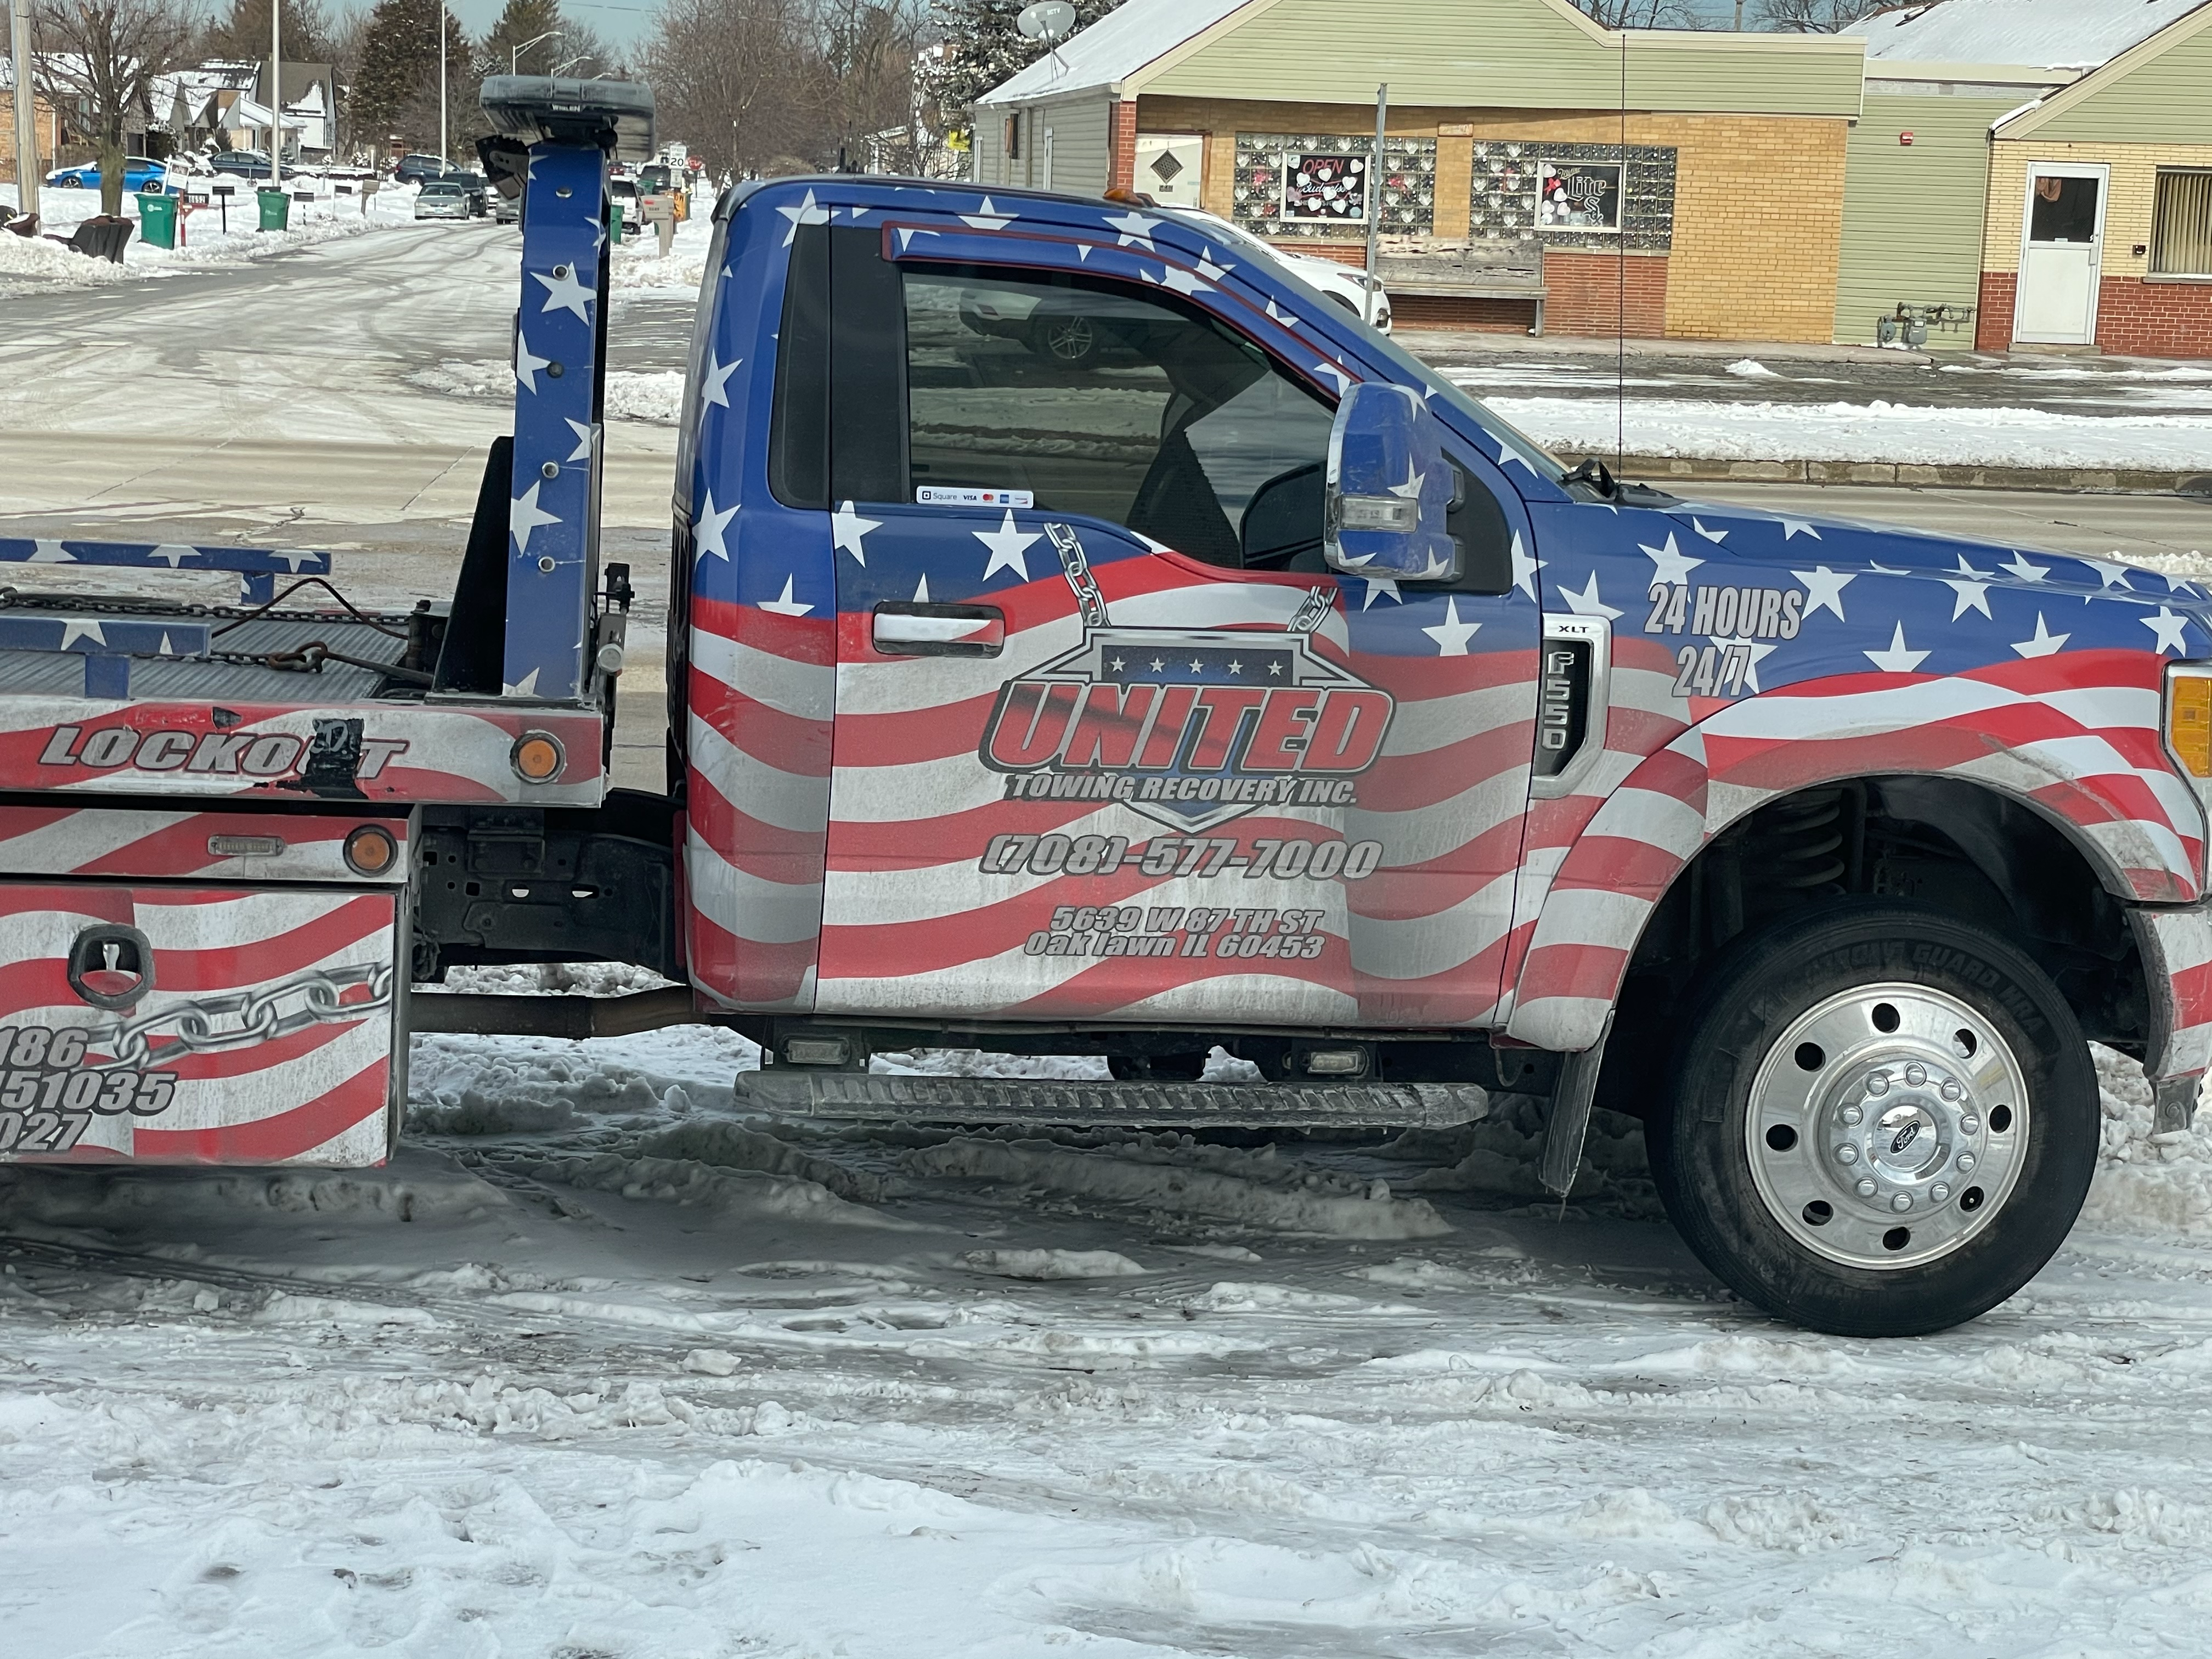 United towing recovery inc  Towing.com Profile Banner